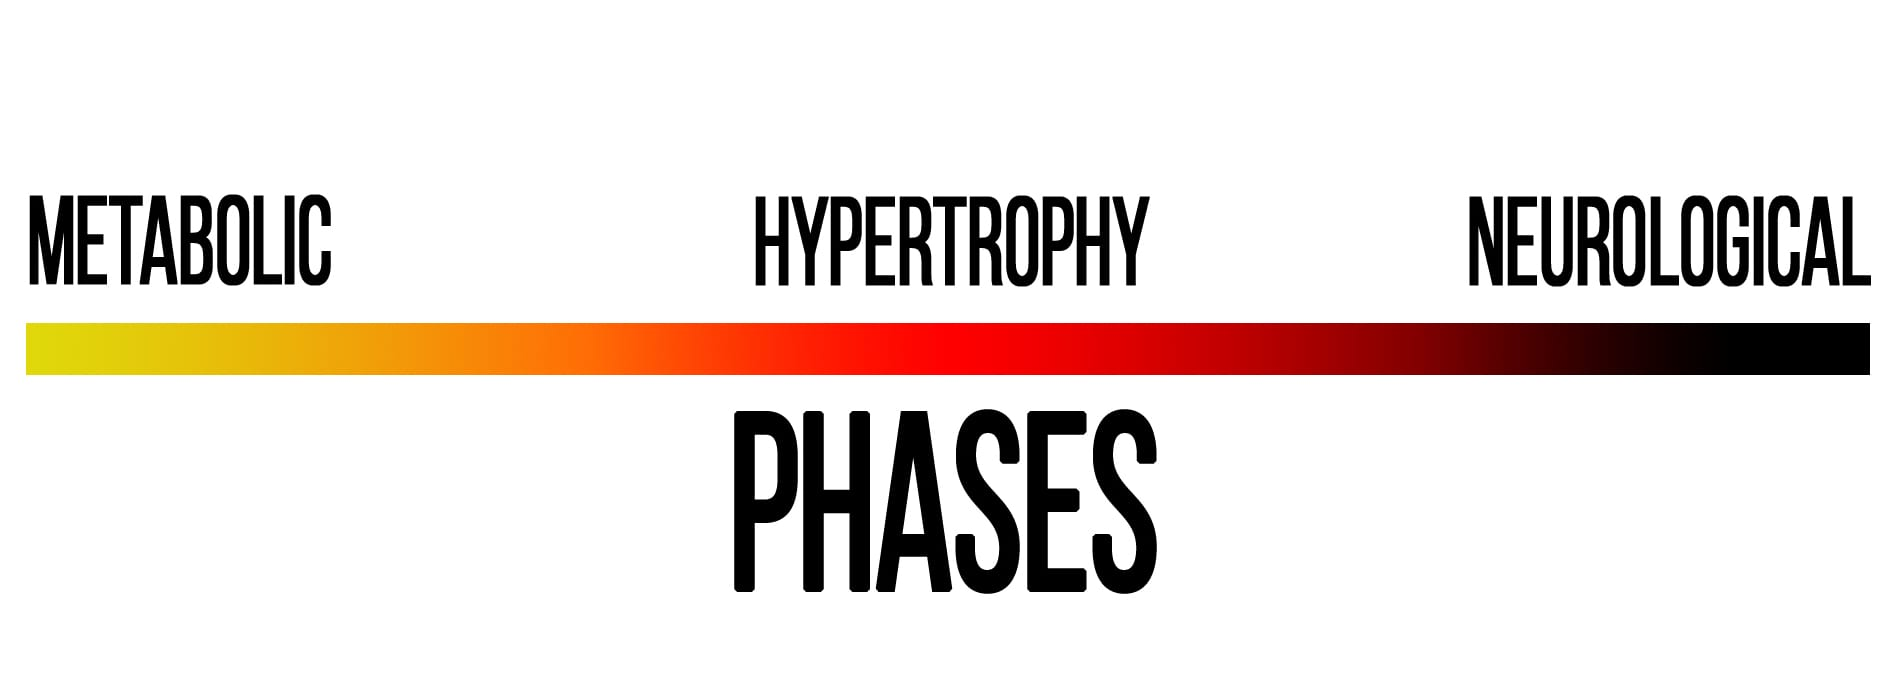 3 phases chart